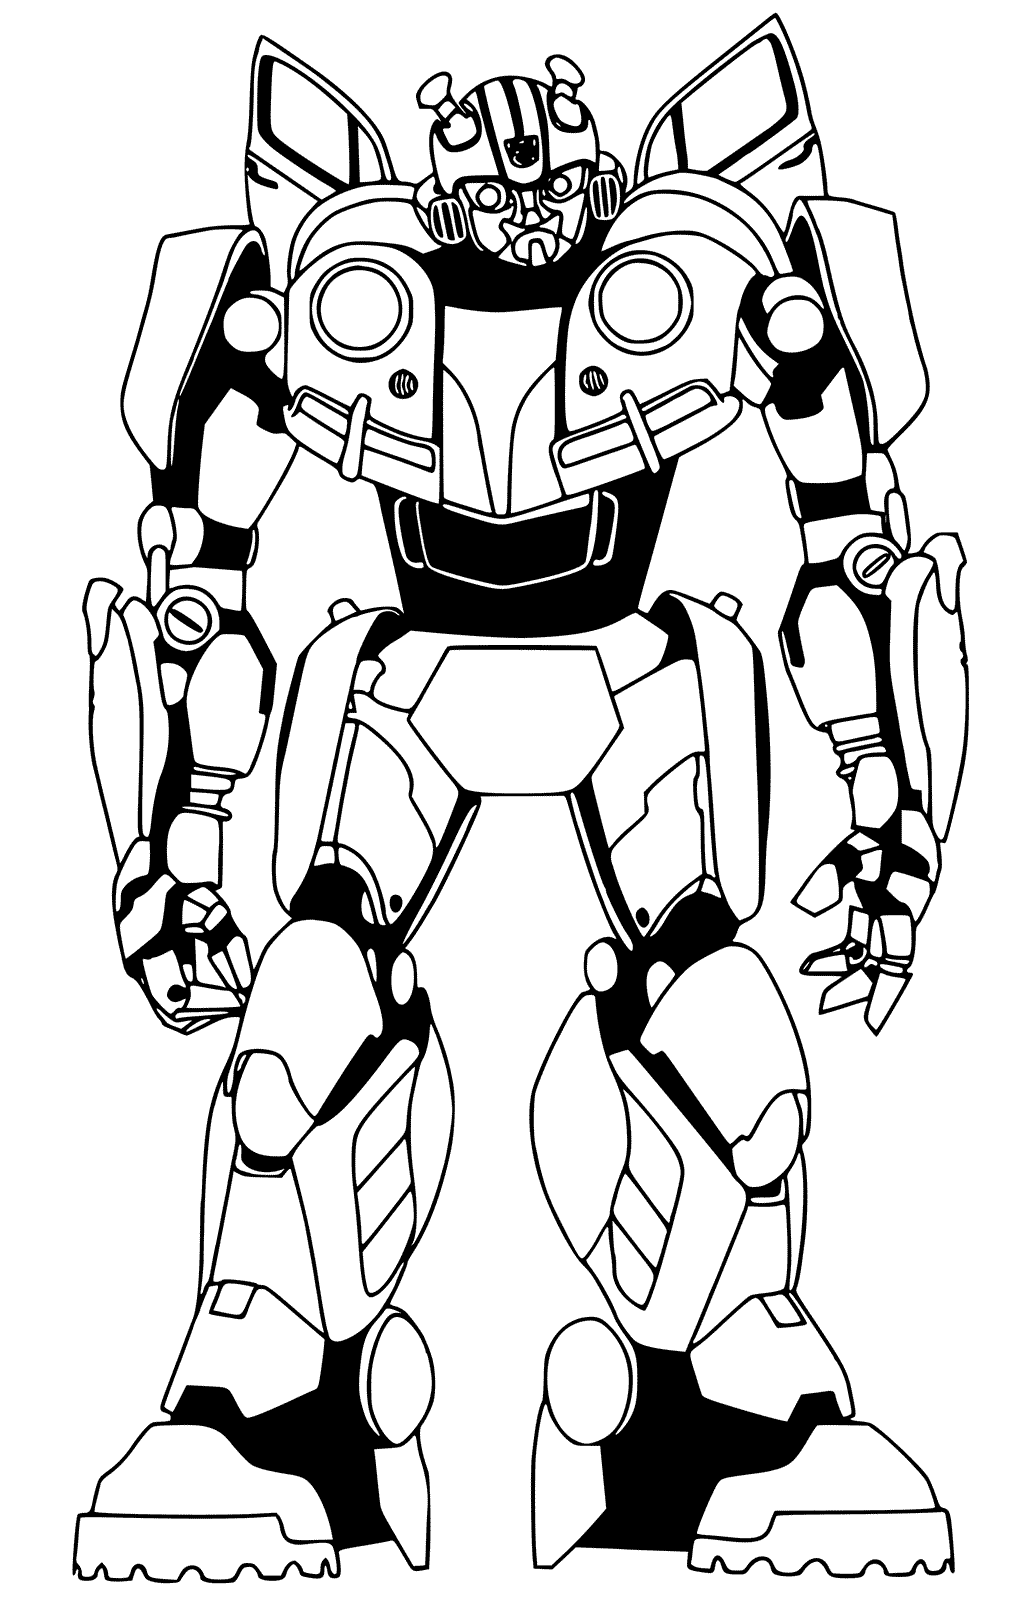 Bumblebee Coloring Pages - Best Coloring Pages For Kids